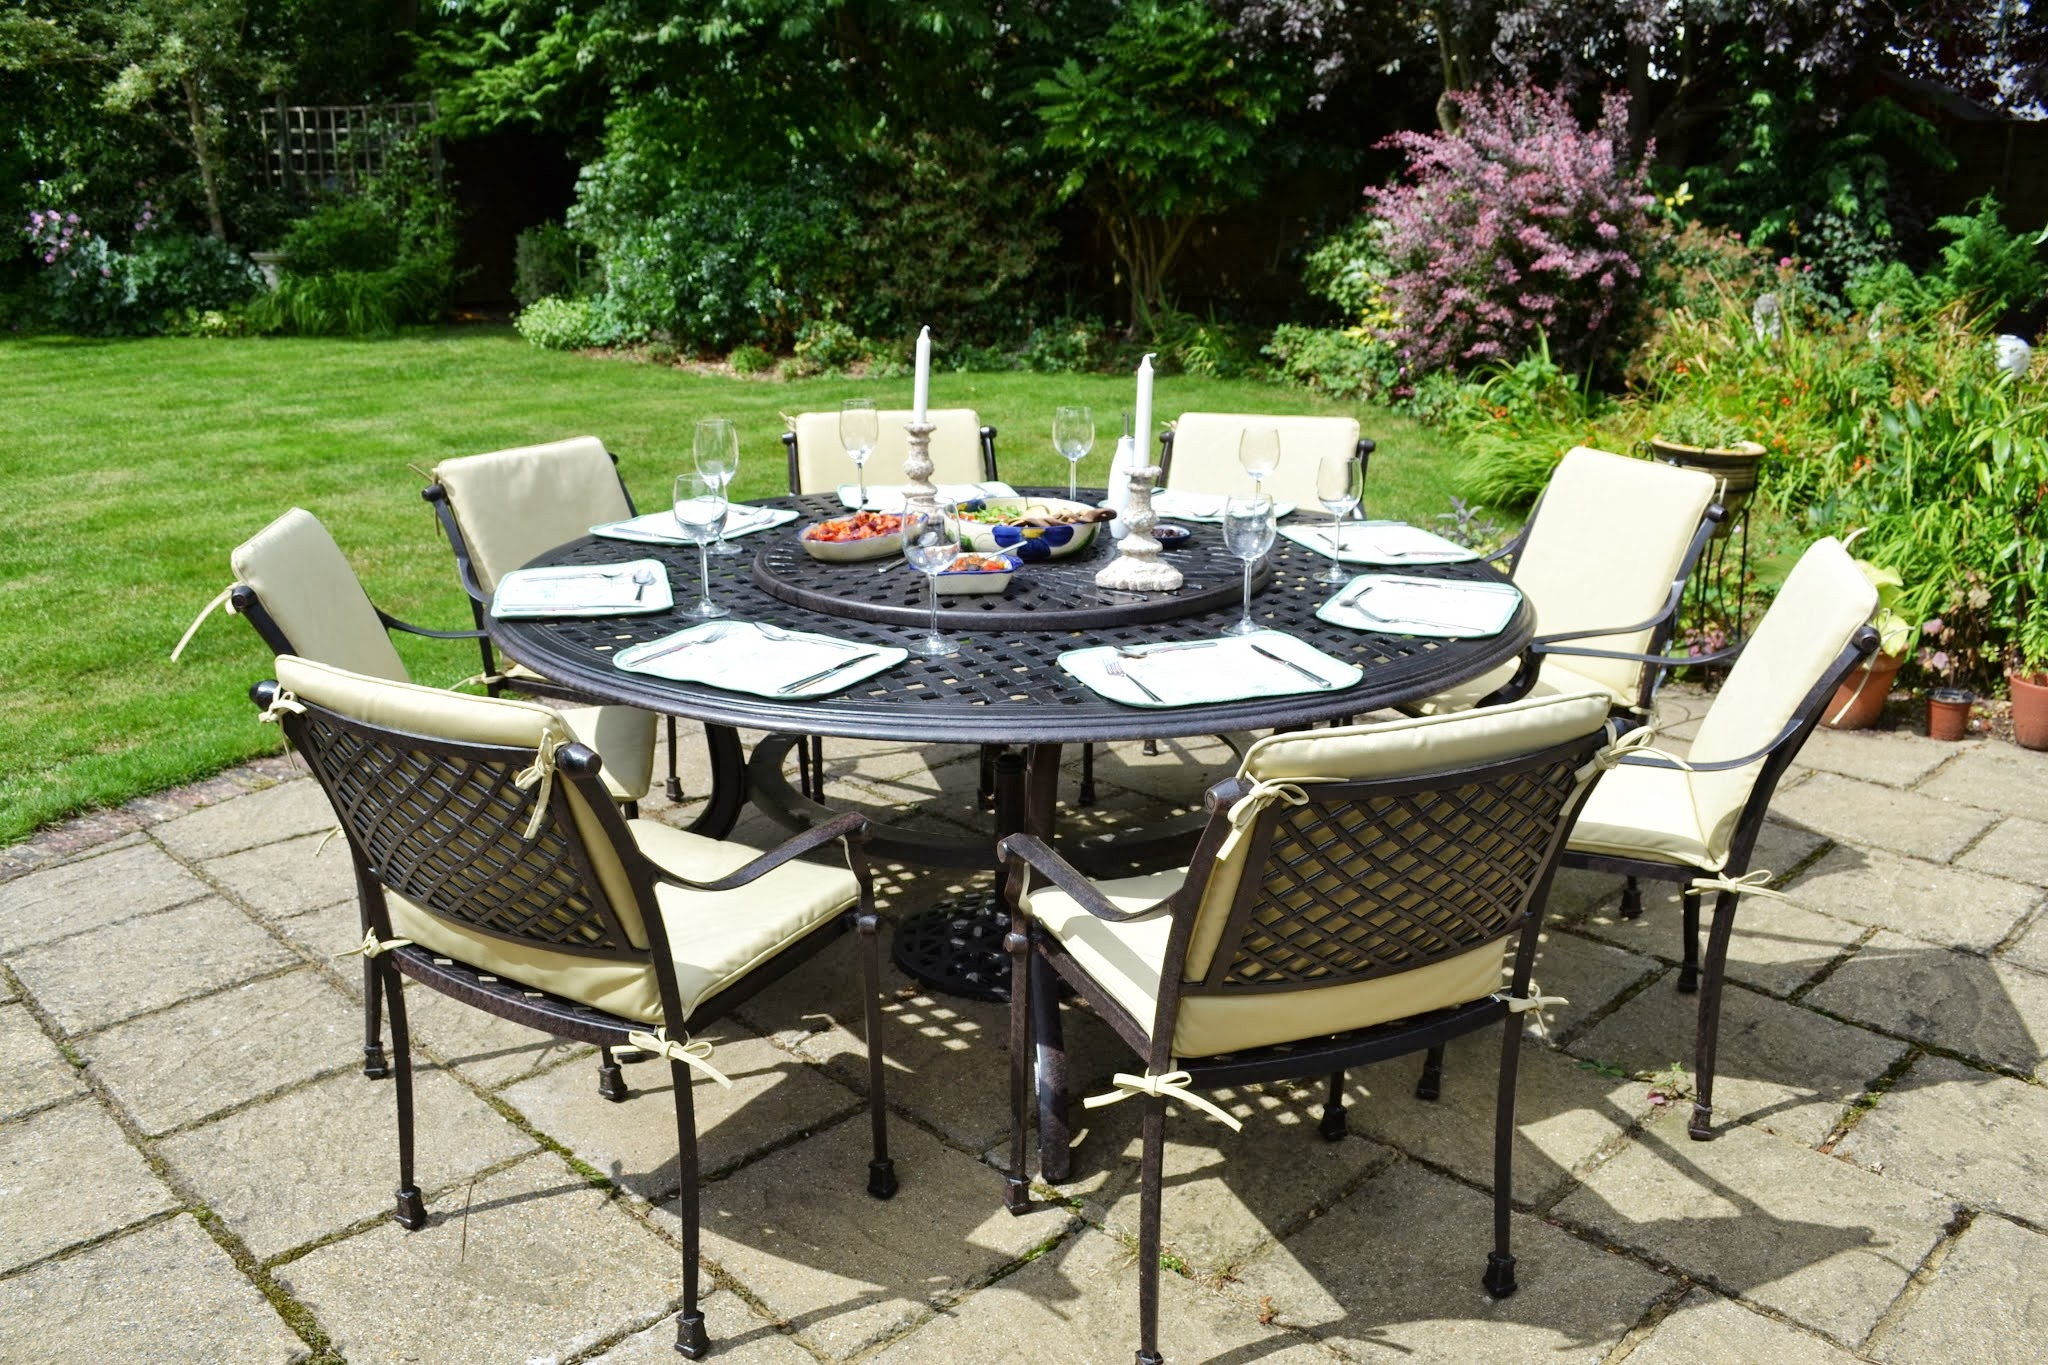 Comparatif tables de jardin plateau tournant le blog - Table ronde chaises ...